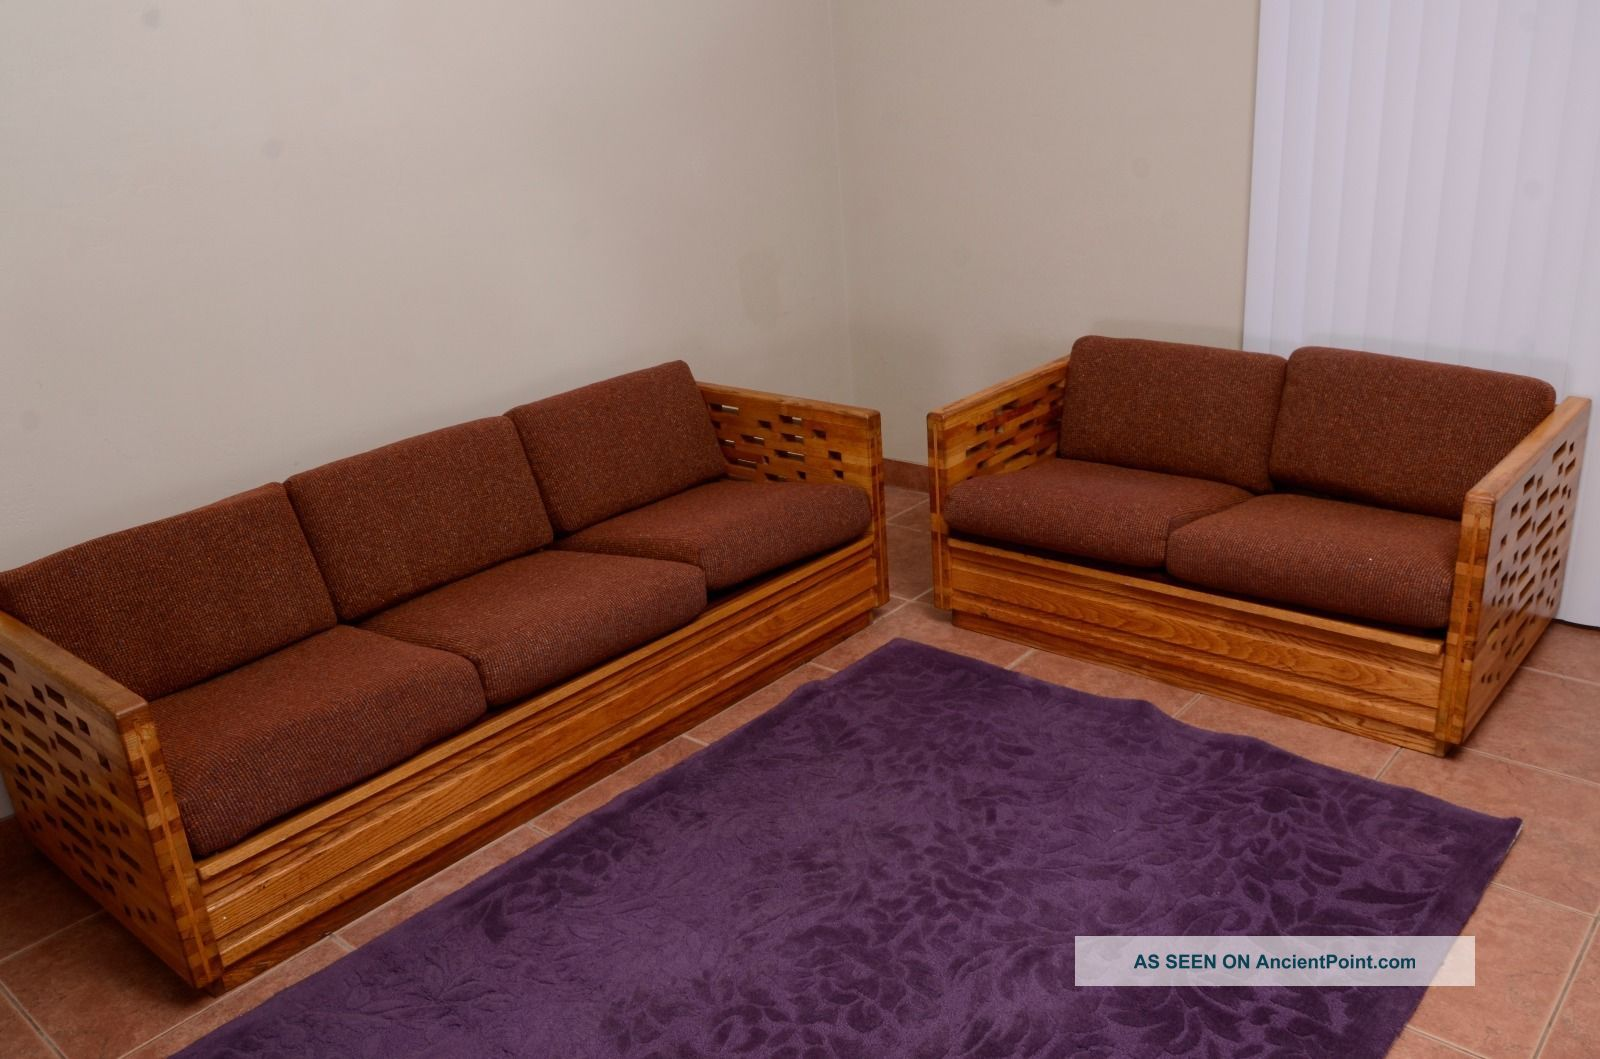 404 page not found for 70s wooden couch